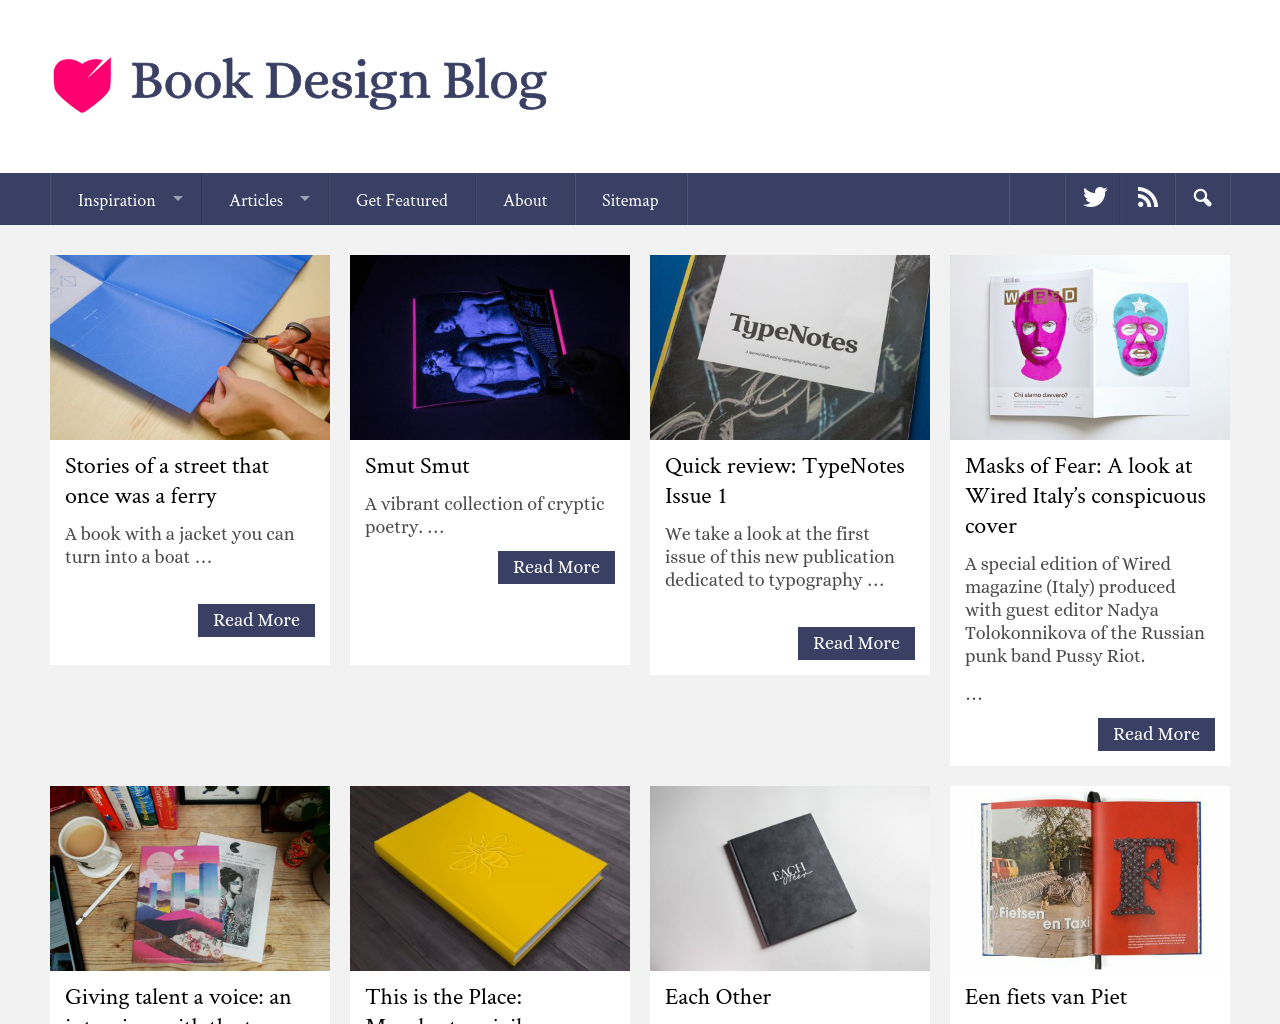 The-Book-Design-Blog-Advertising-Reviews-Pricing